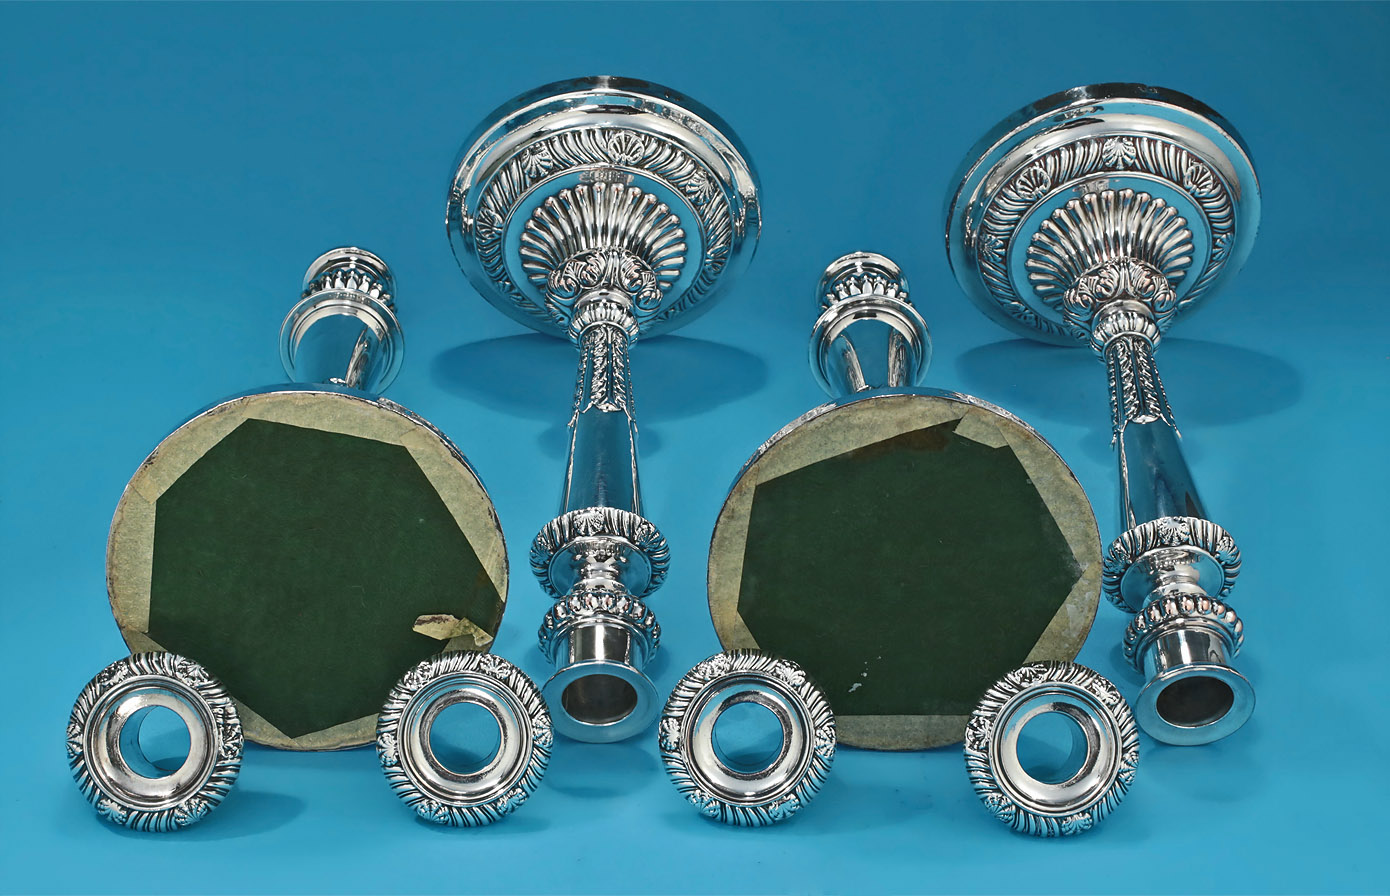 George III Set of Old Sheffield Plate Candelabra & Candlesticks, Matthew Boulton, c1810, verso details